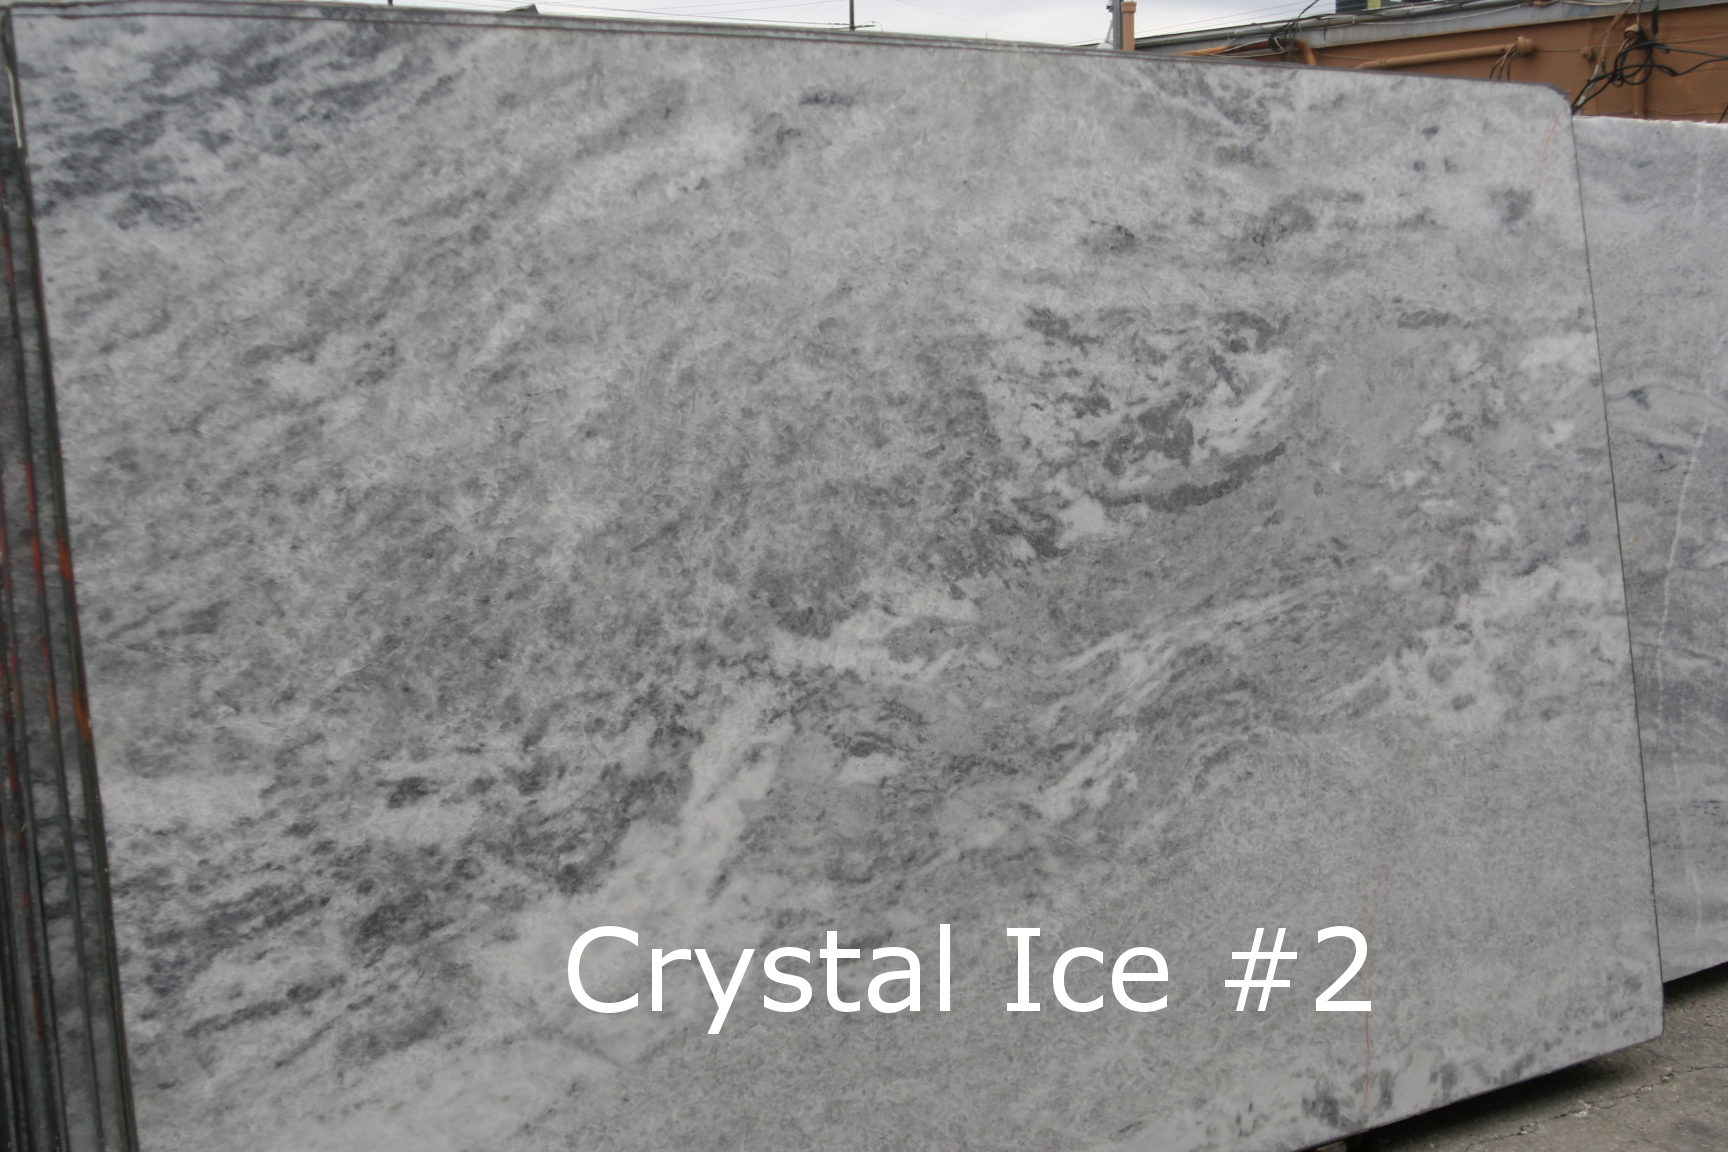 Crystal Ice #2